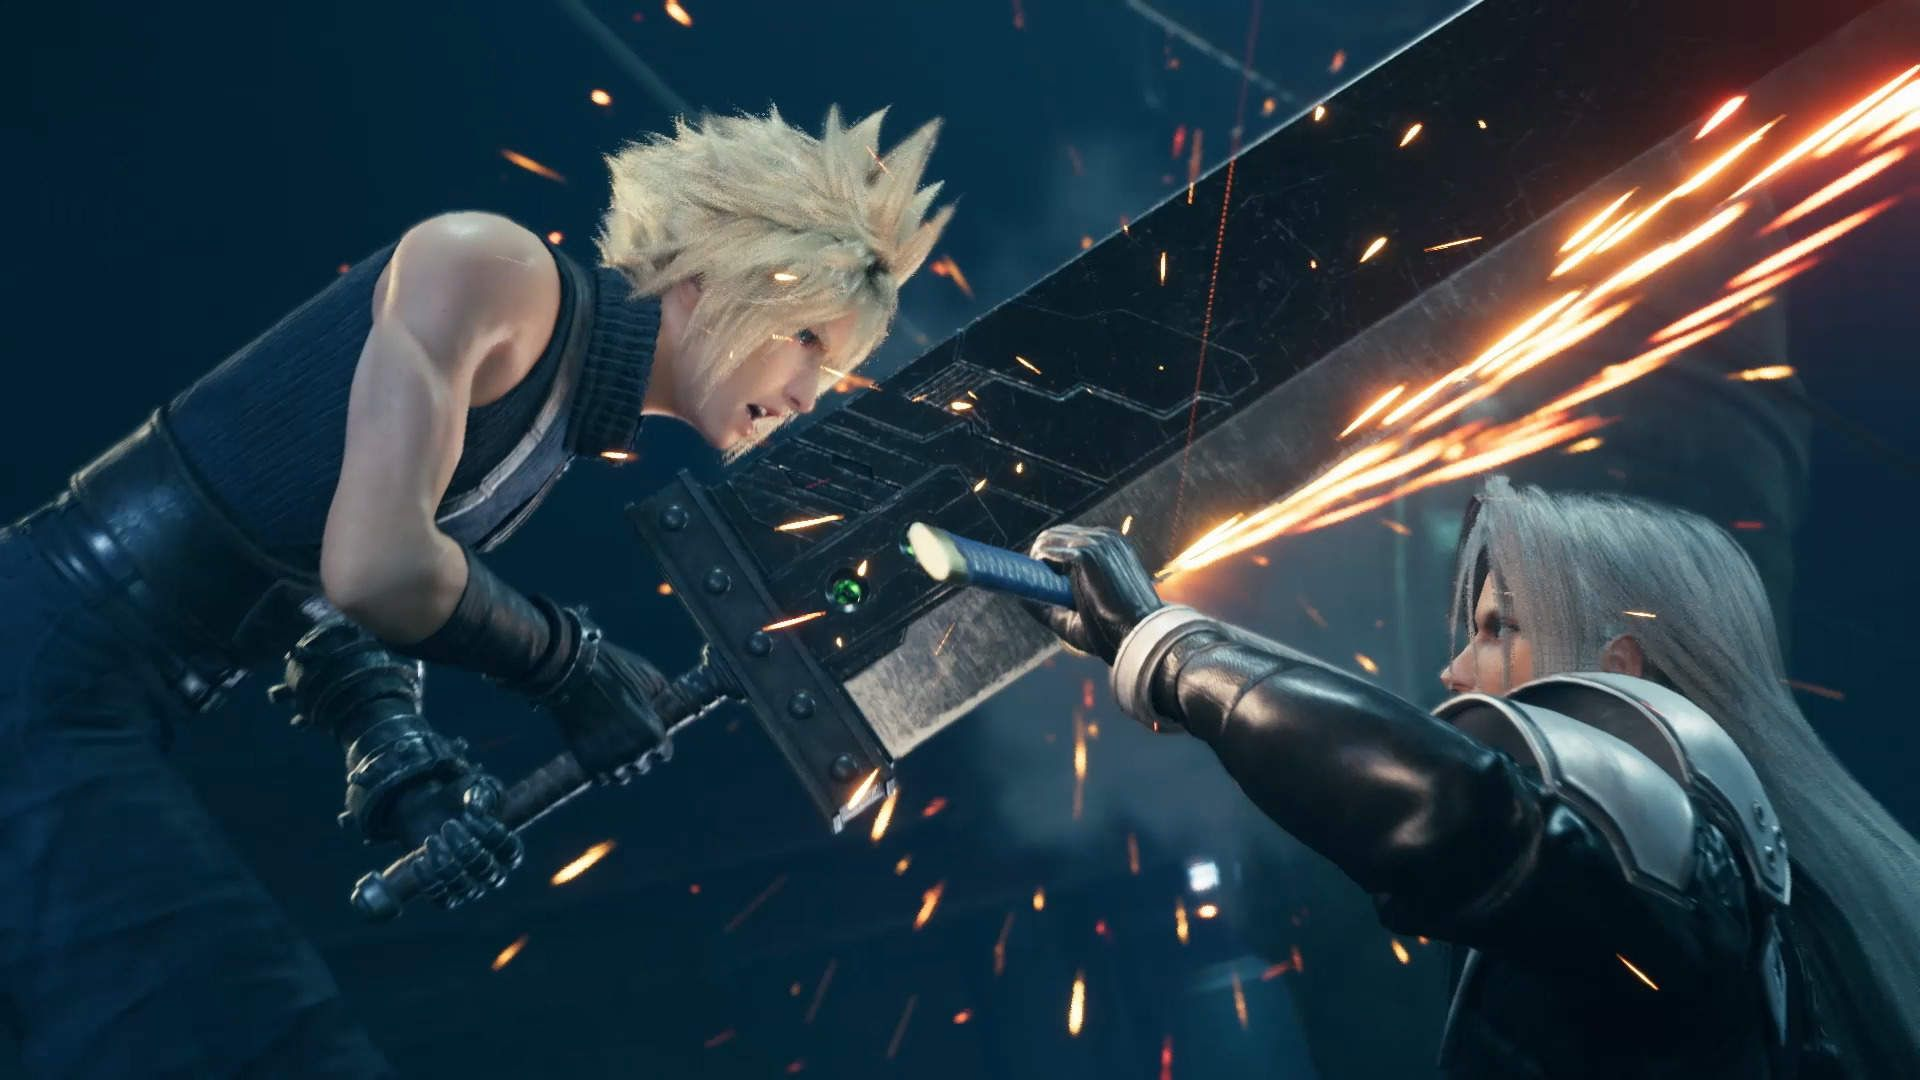 Final Fantasy 7 Remake S First Patch Fixes Bugs But Not Bad Textures